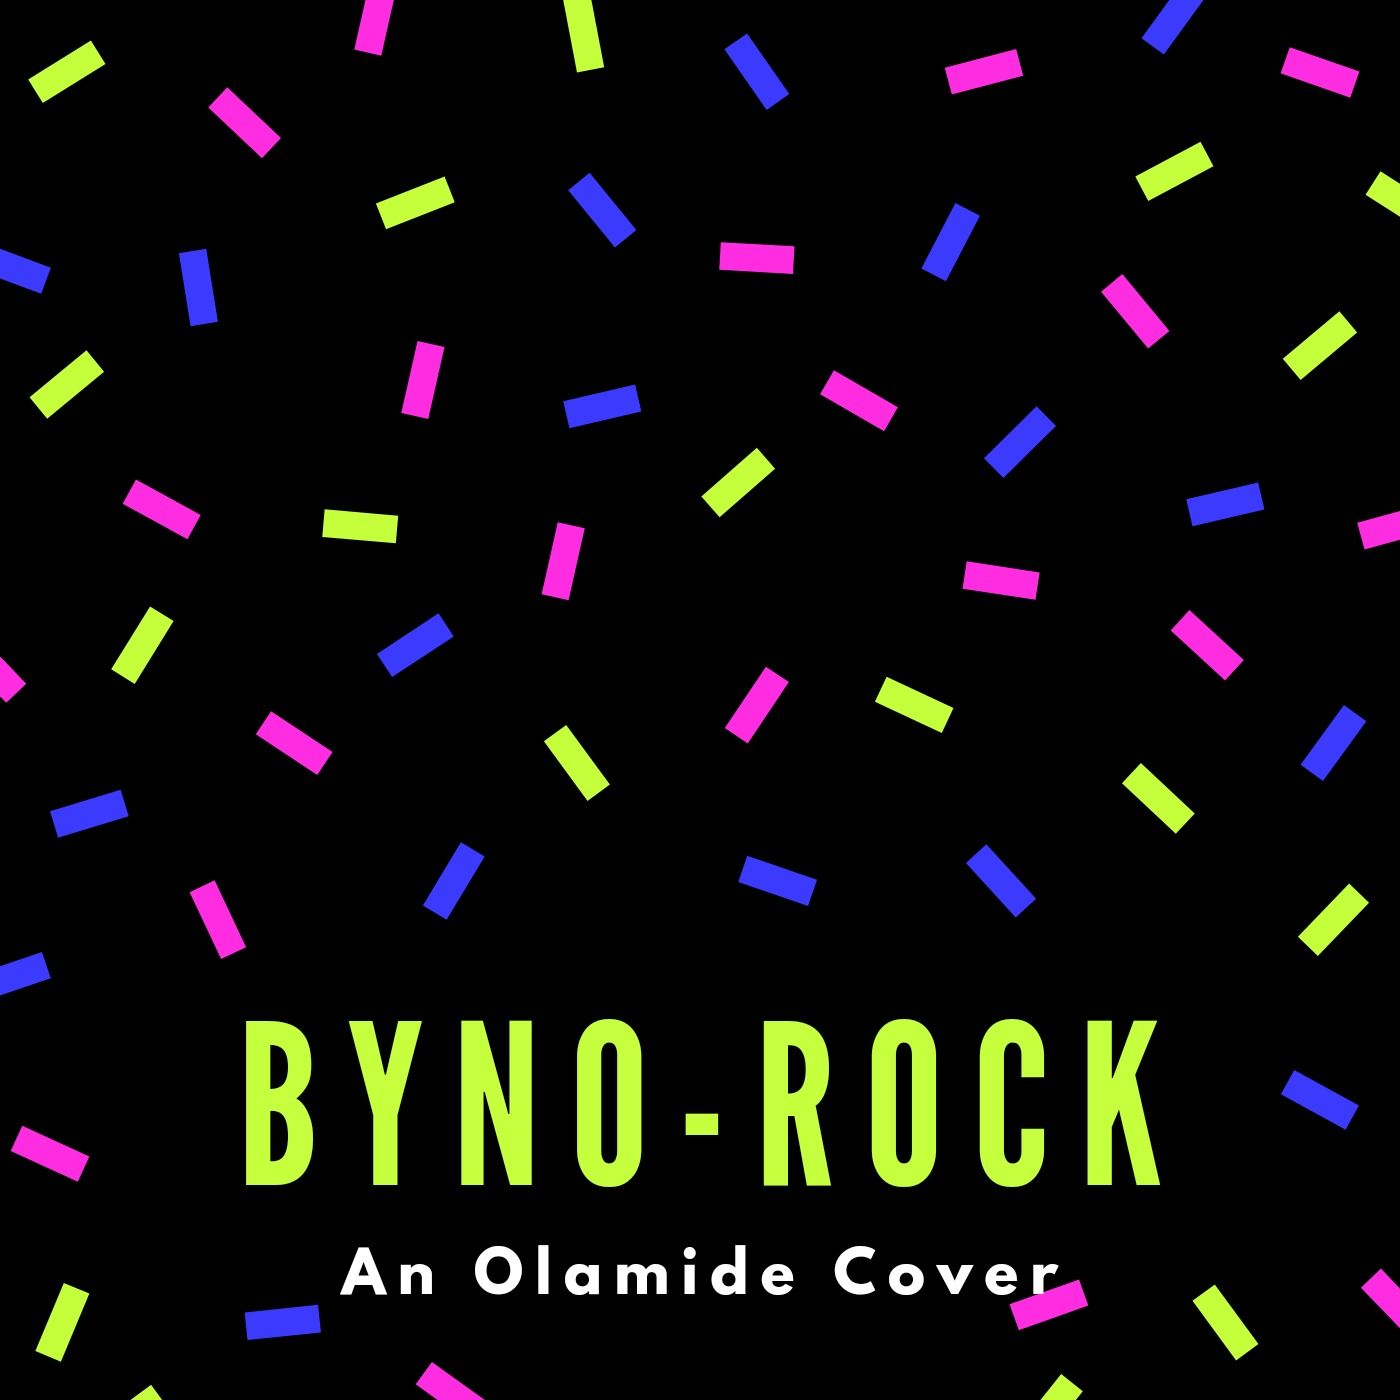 Byno  Rock (An Olamide Cover) mp3 download